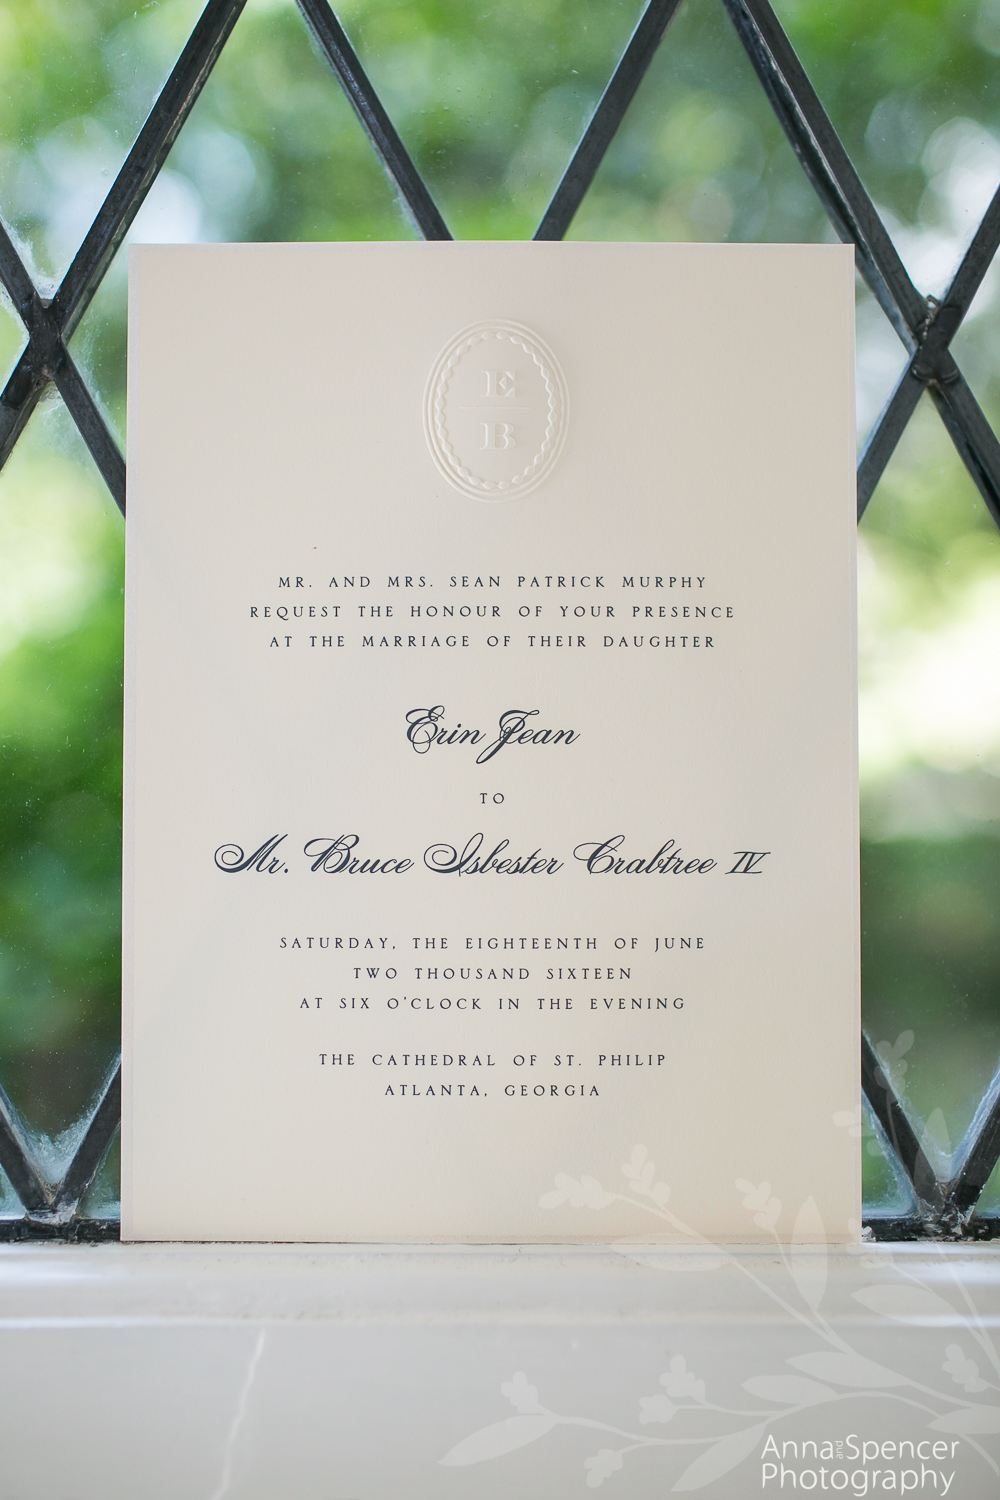 Wedding invitation blind embossed